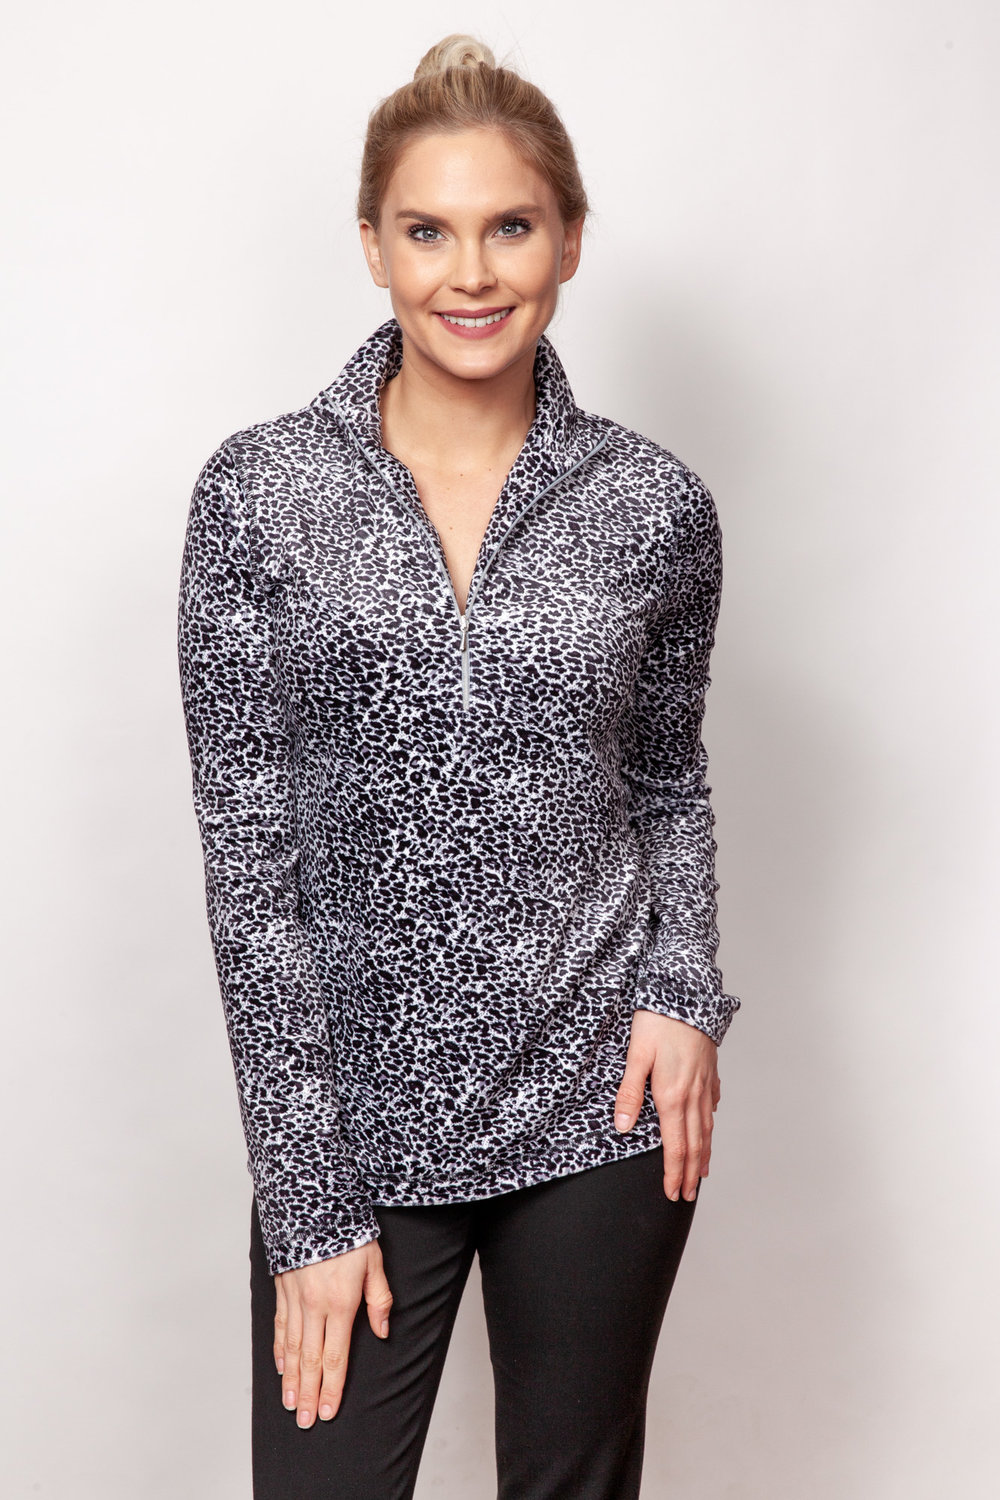 Copy of Style # 92483-19, p13 <br/>Micro Fleece Cheetah <br/>Pattern: Cheetah